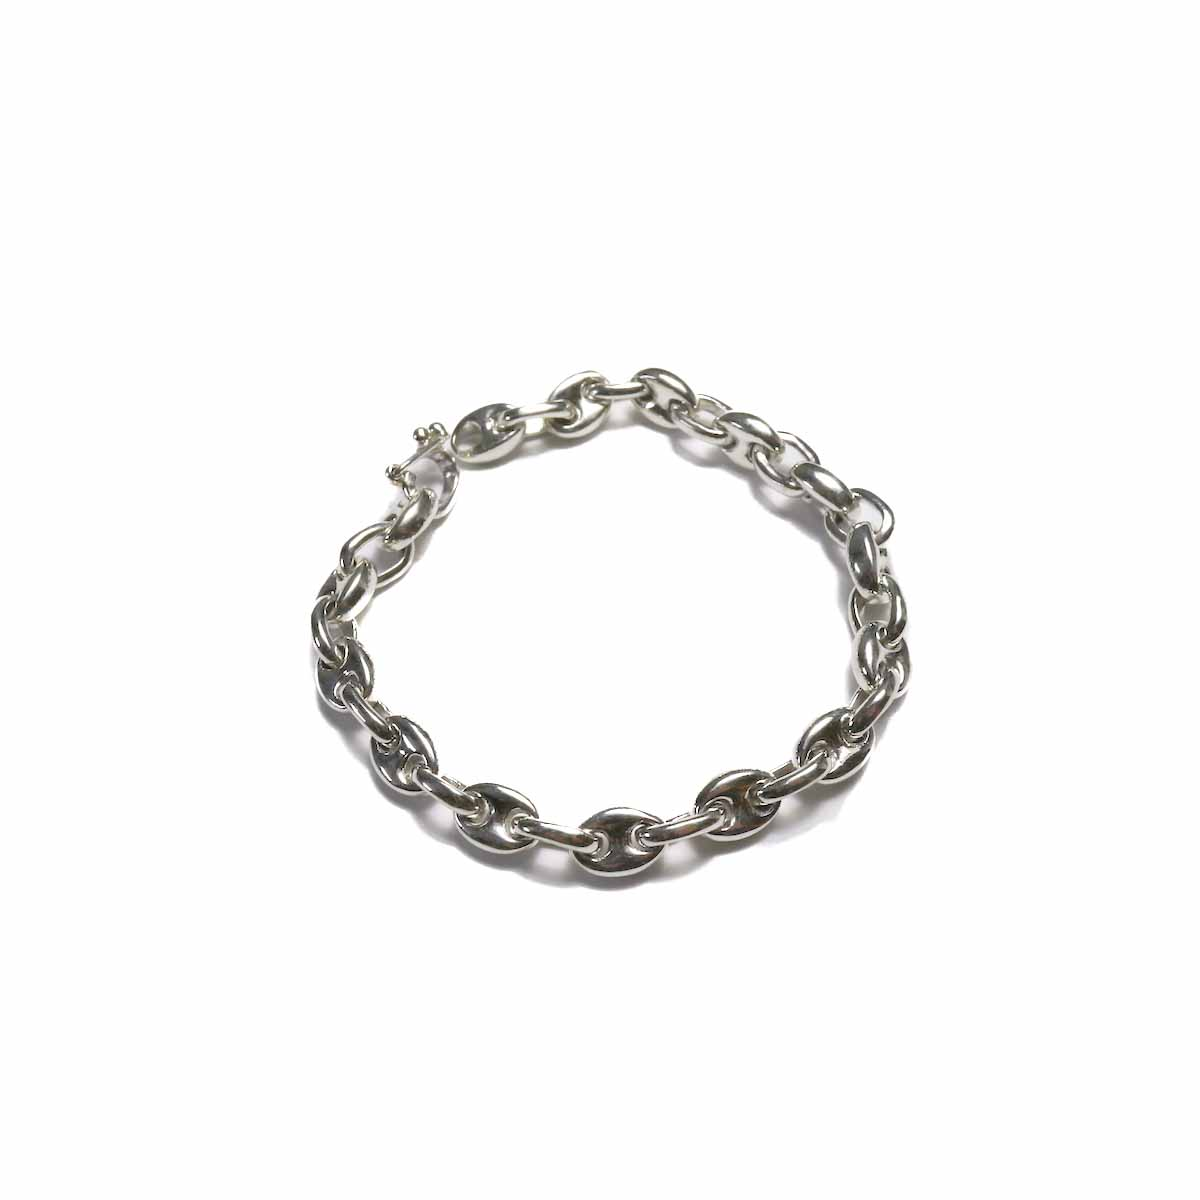 FIFTH SILVER / SILVER-SPECIAL-001 BRACELET